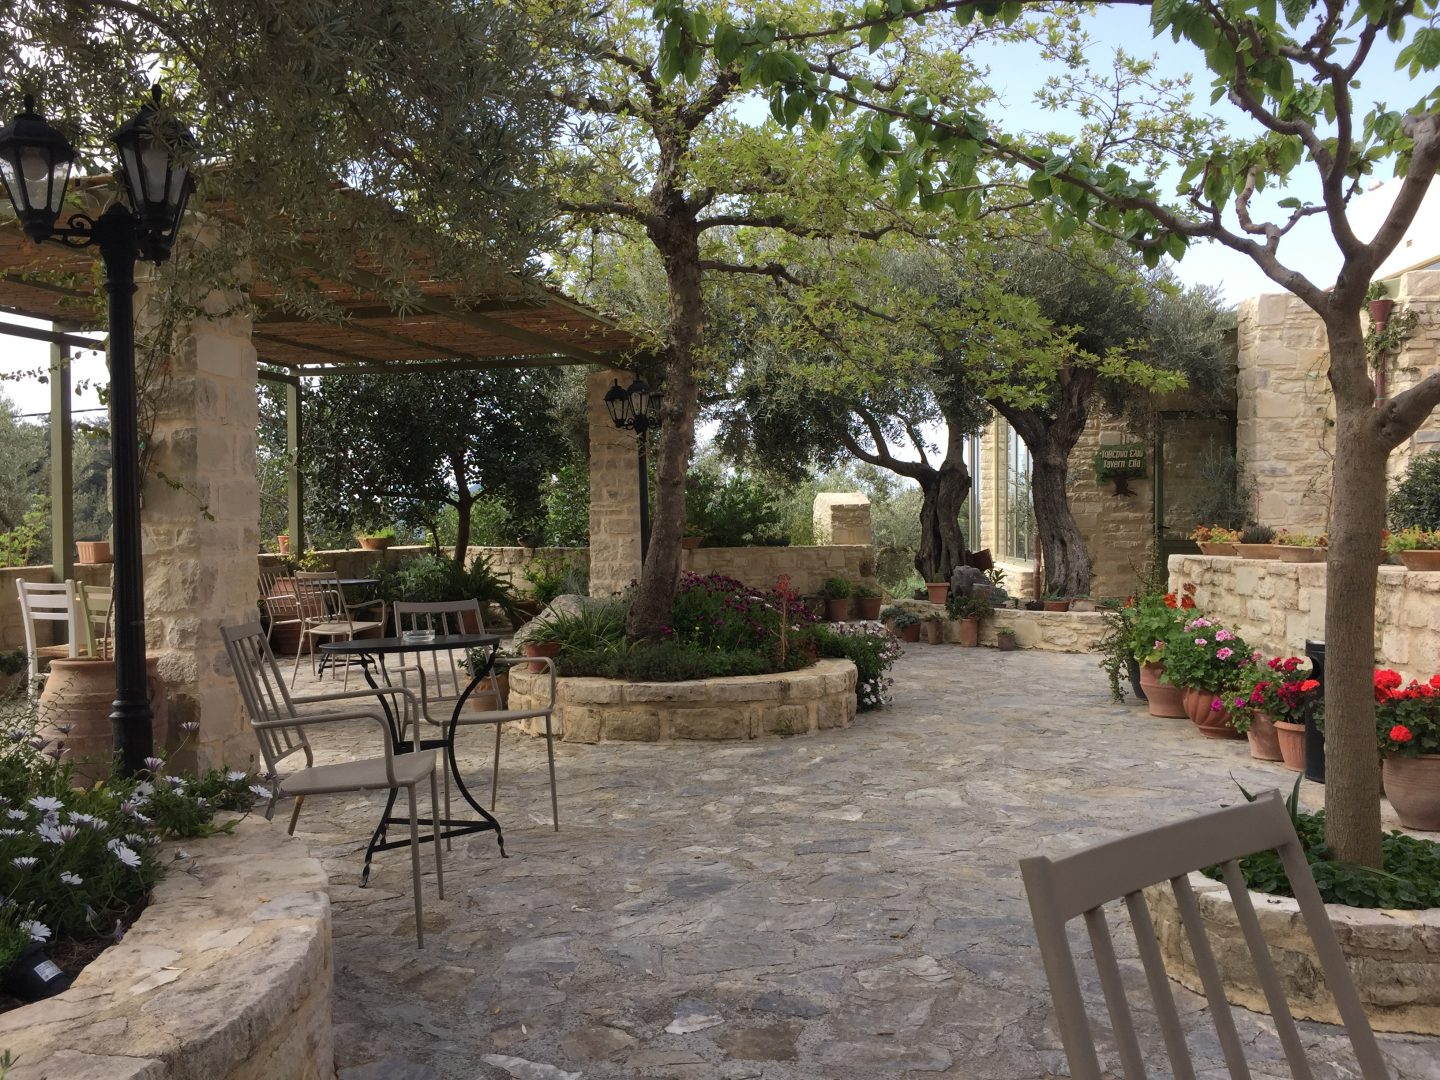 The courtyard at Eleonas Country Village